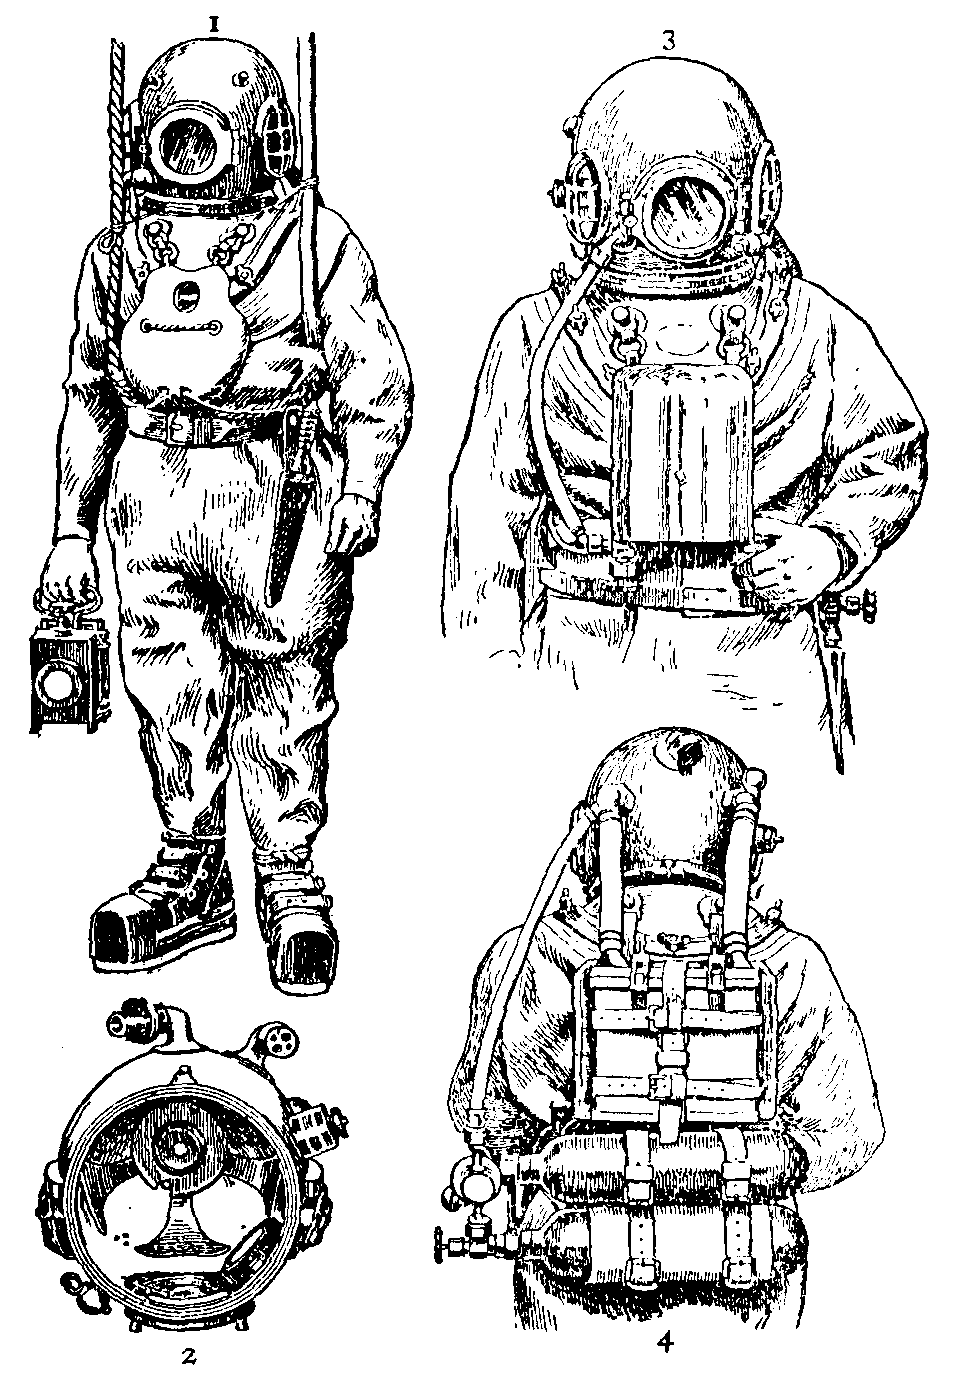 the gallery for gt old diving suit drawing